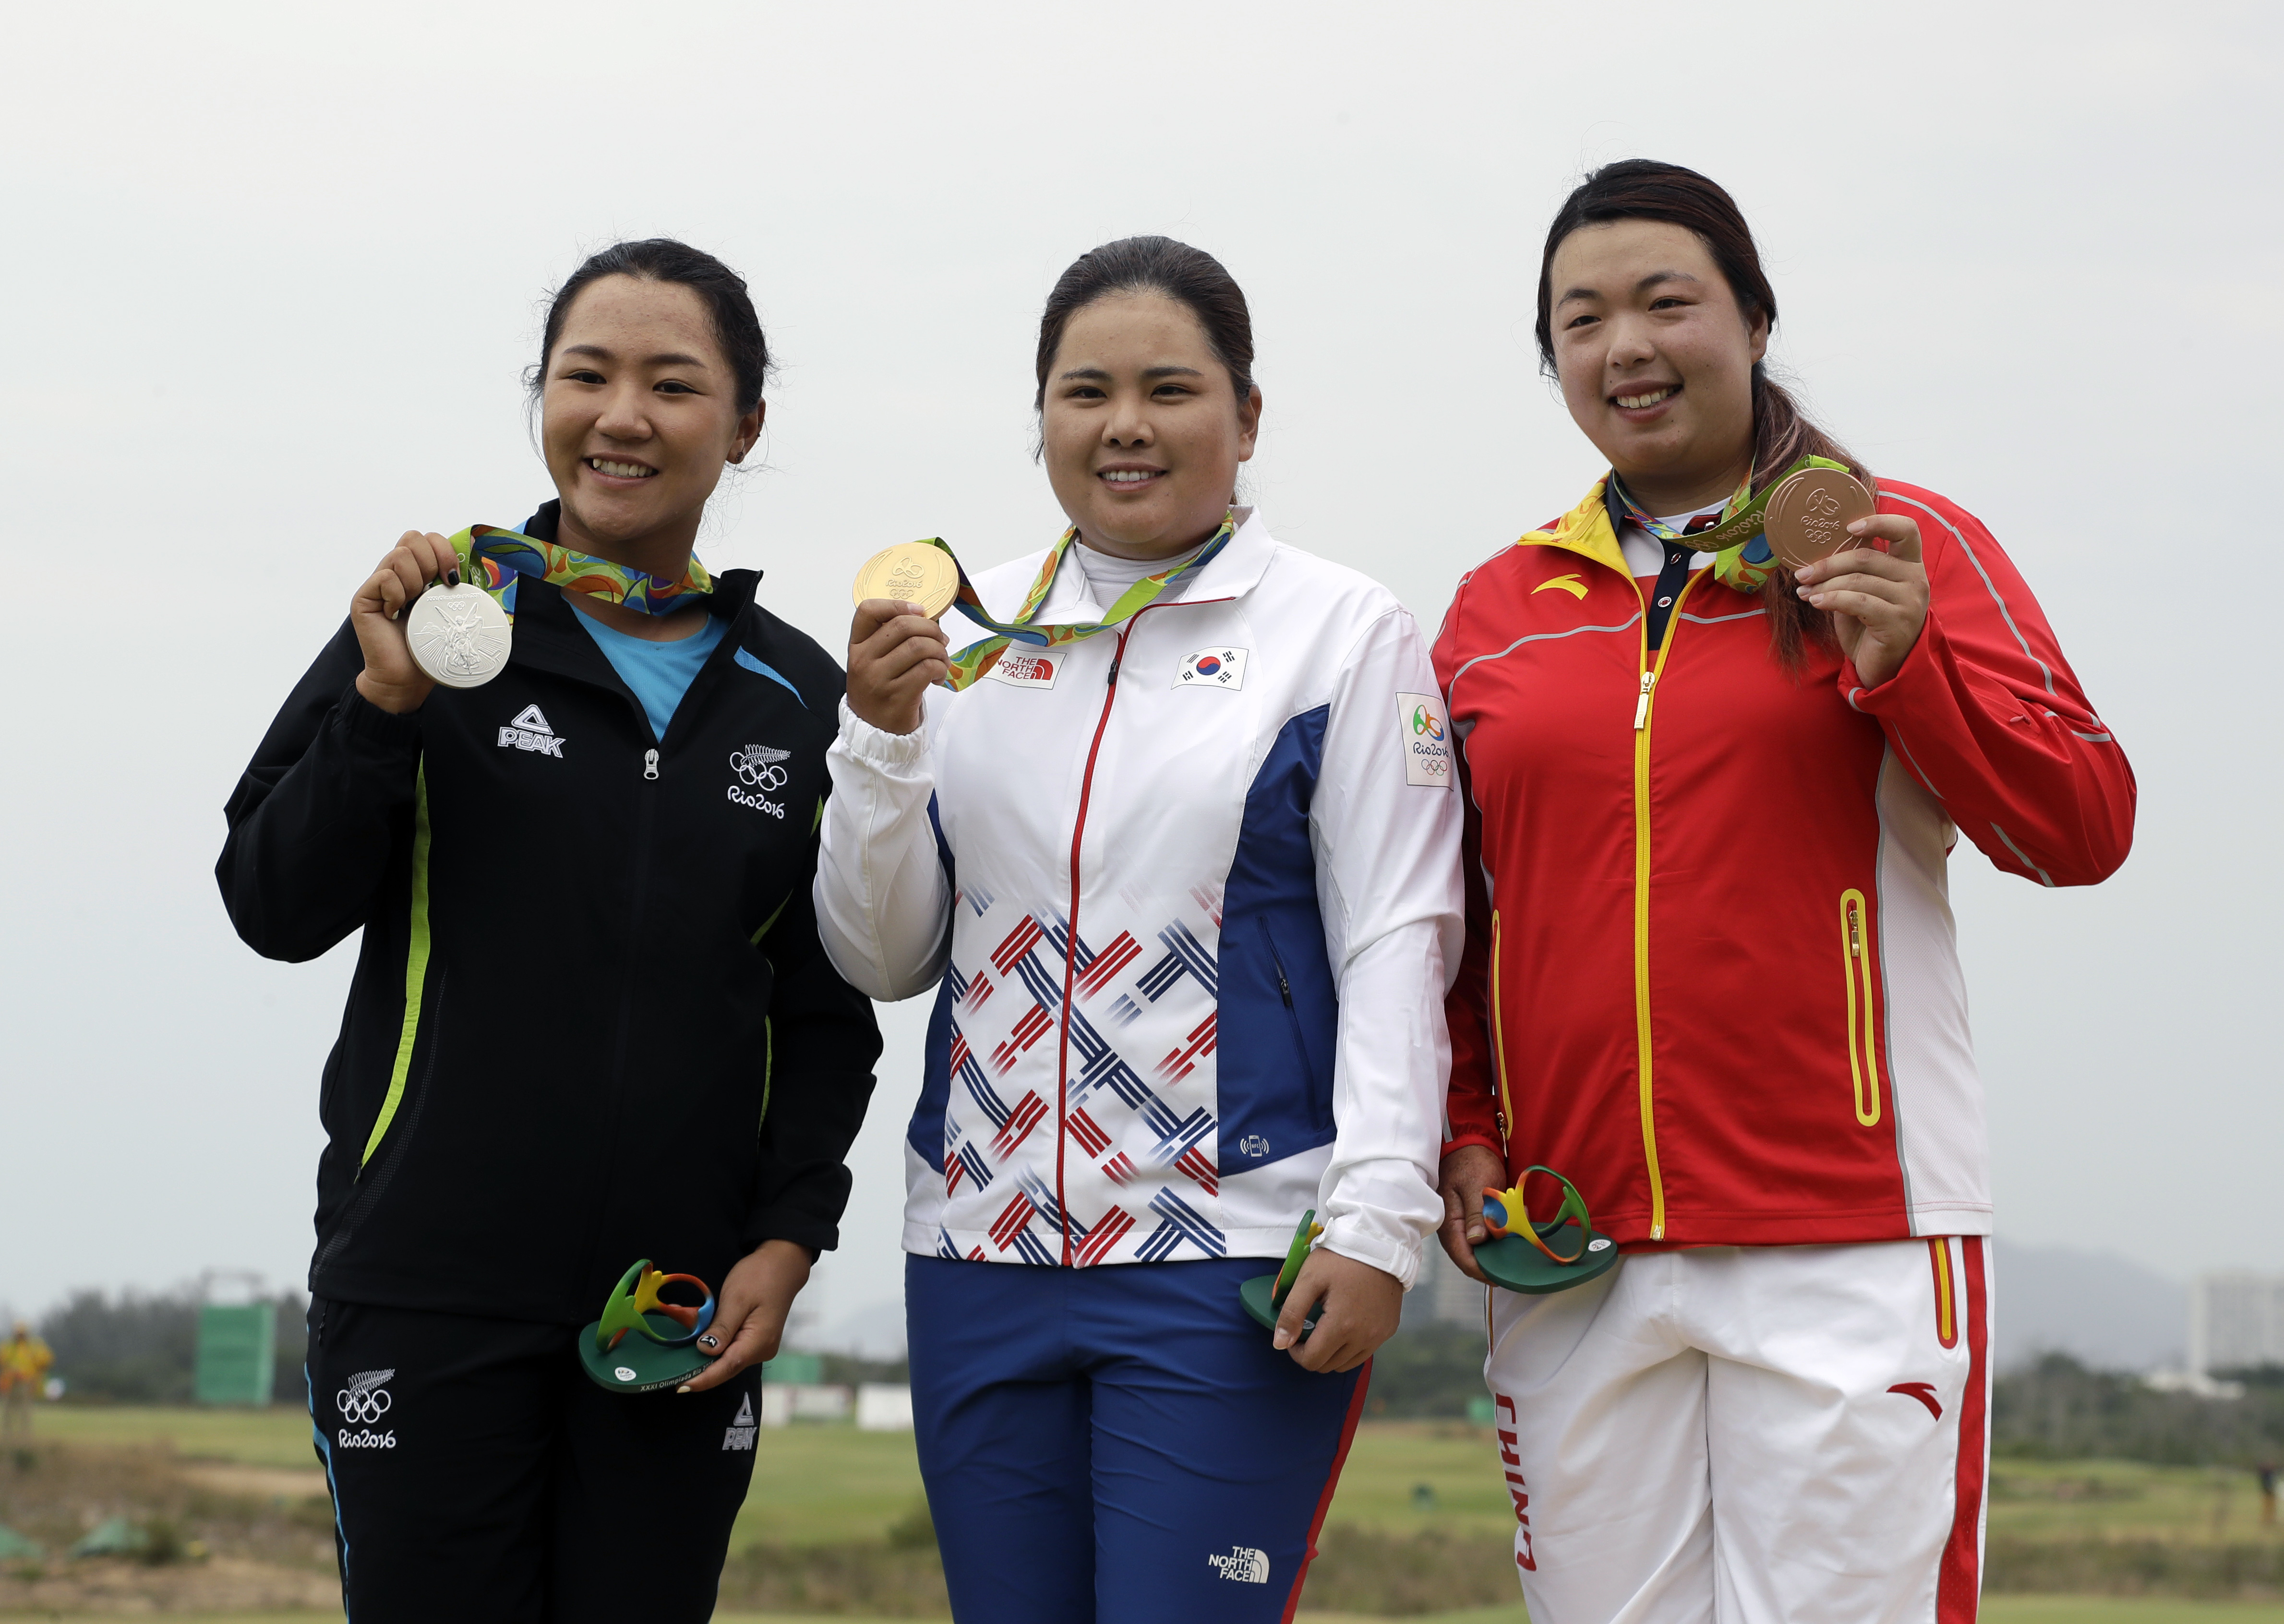 From left to right, silver medalist, Lydia Ko of New Zealand, gold medalist Inbee Park of South Korea, and bronze medalist Shanshan Feng of China, show their medals after the final round of the women's golf event at the 2016 Summer Olympics in Rio de Jane